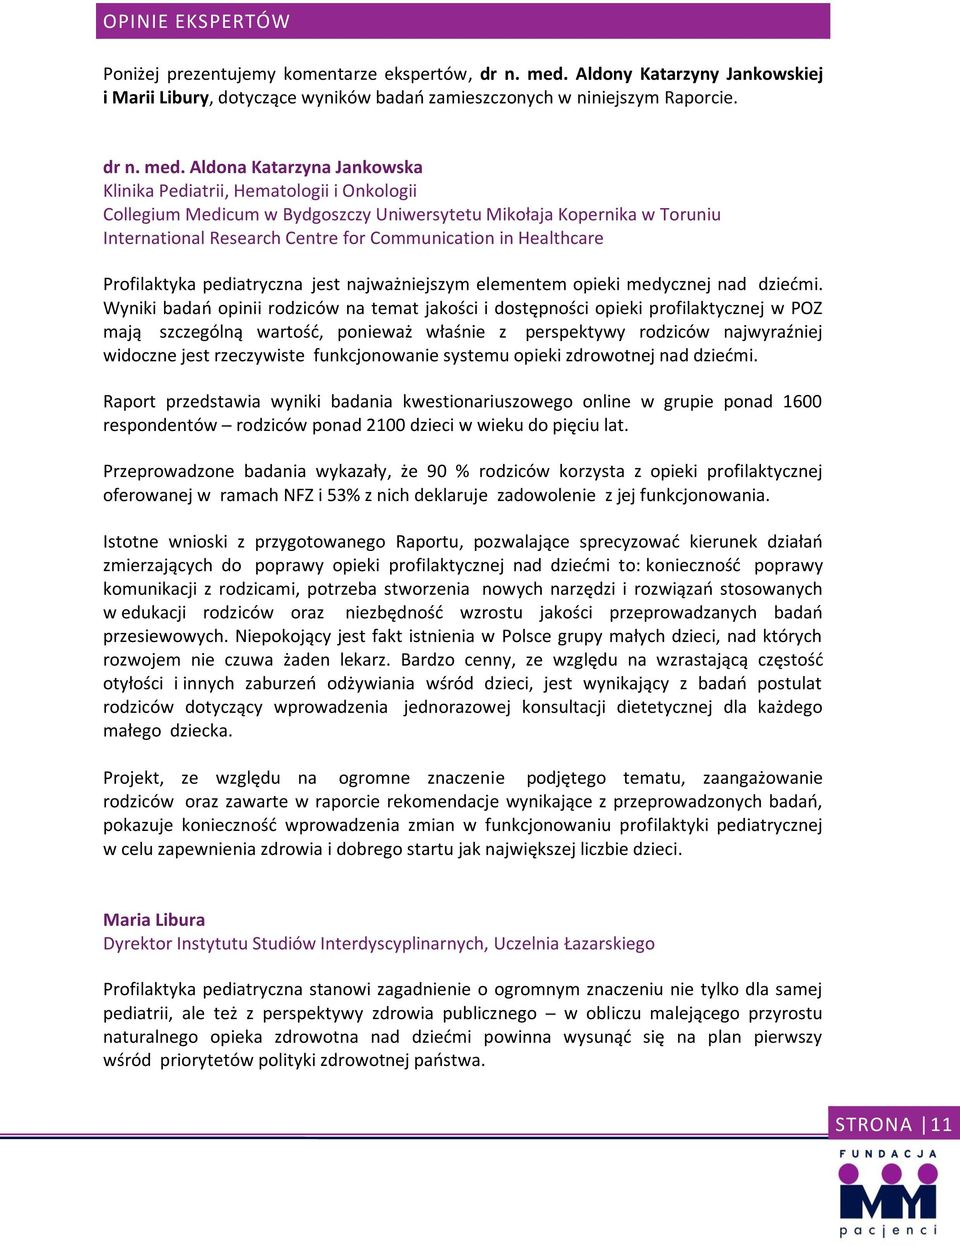 Aldona Katarzyna Jankowska Klinika Pediatrii, Hematologii i Onkologii Collegium Medicum w Bydgoszczy Uniwersytetu Mikołaja Kopernika w Toruniu International Research Centre for Communication in